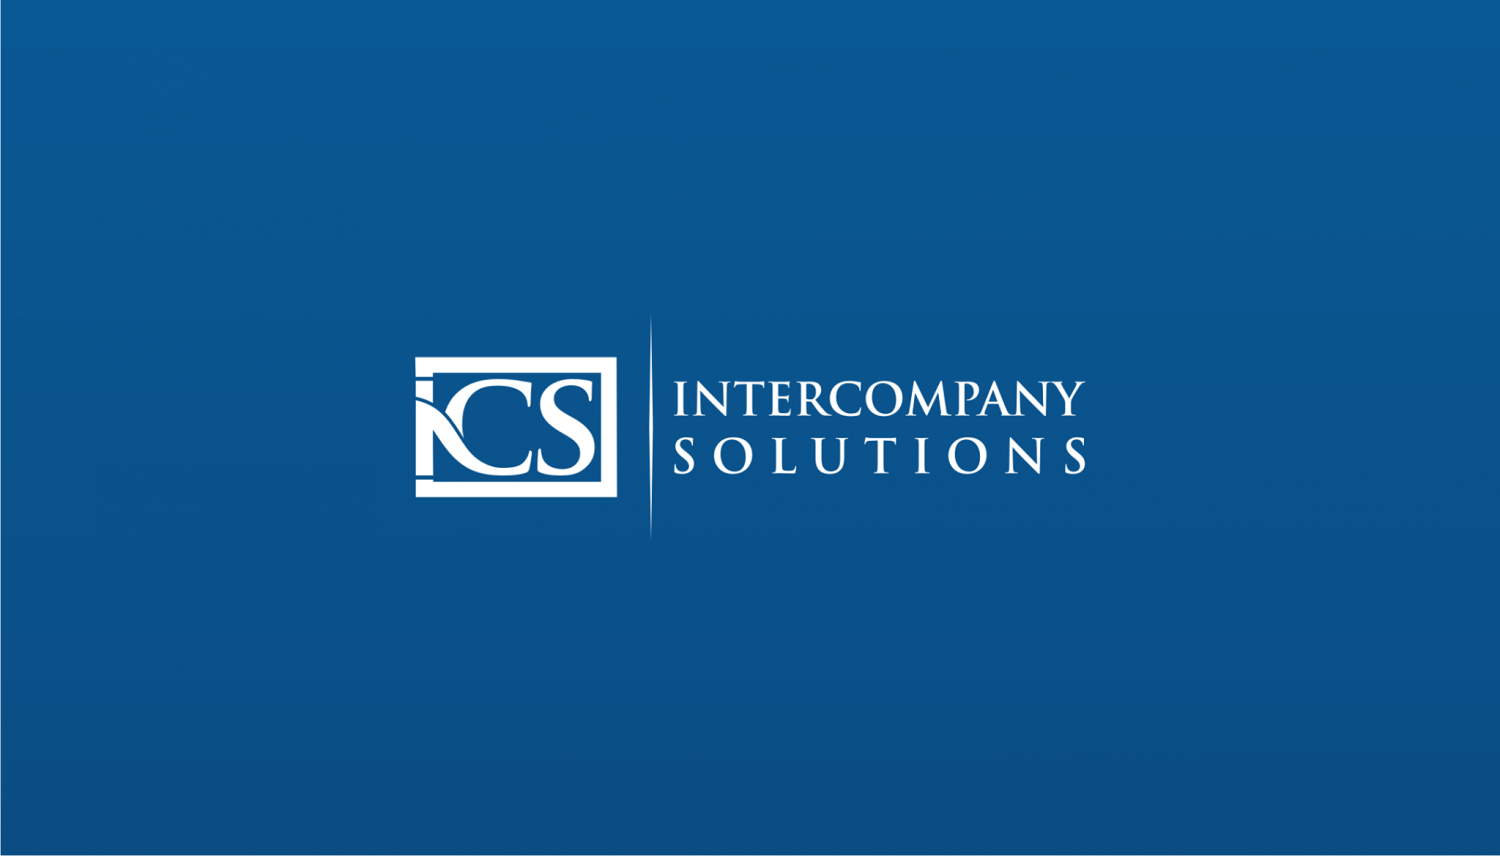 ICS - Company formations Infographic